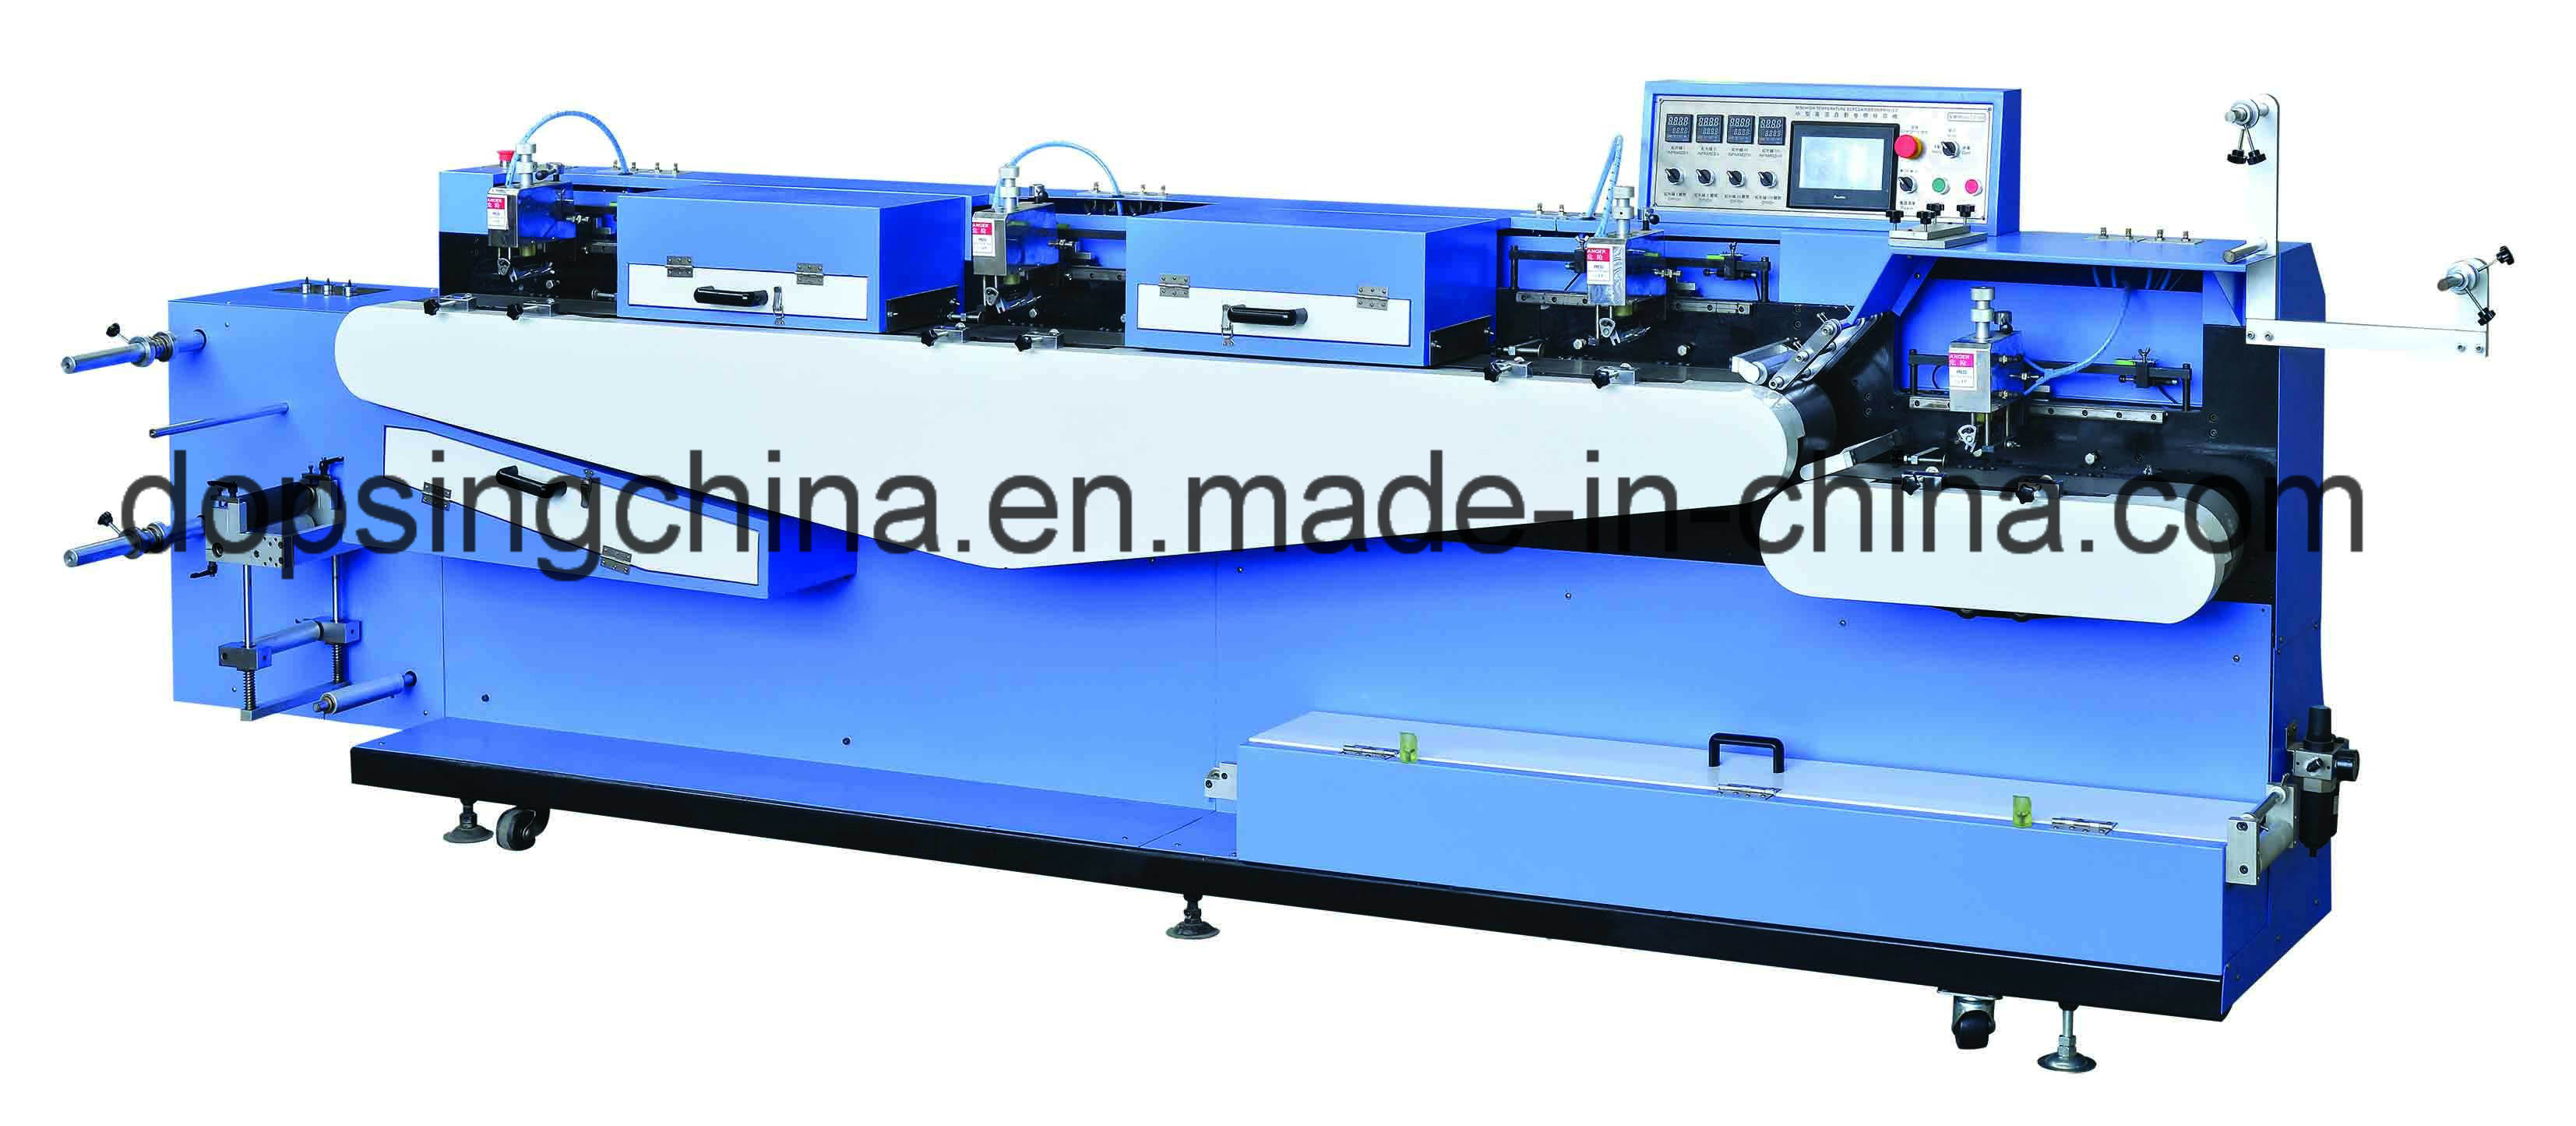 High Temperature Inks Label Ribbons Screen Printing Machine with Ce